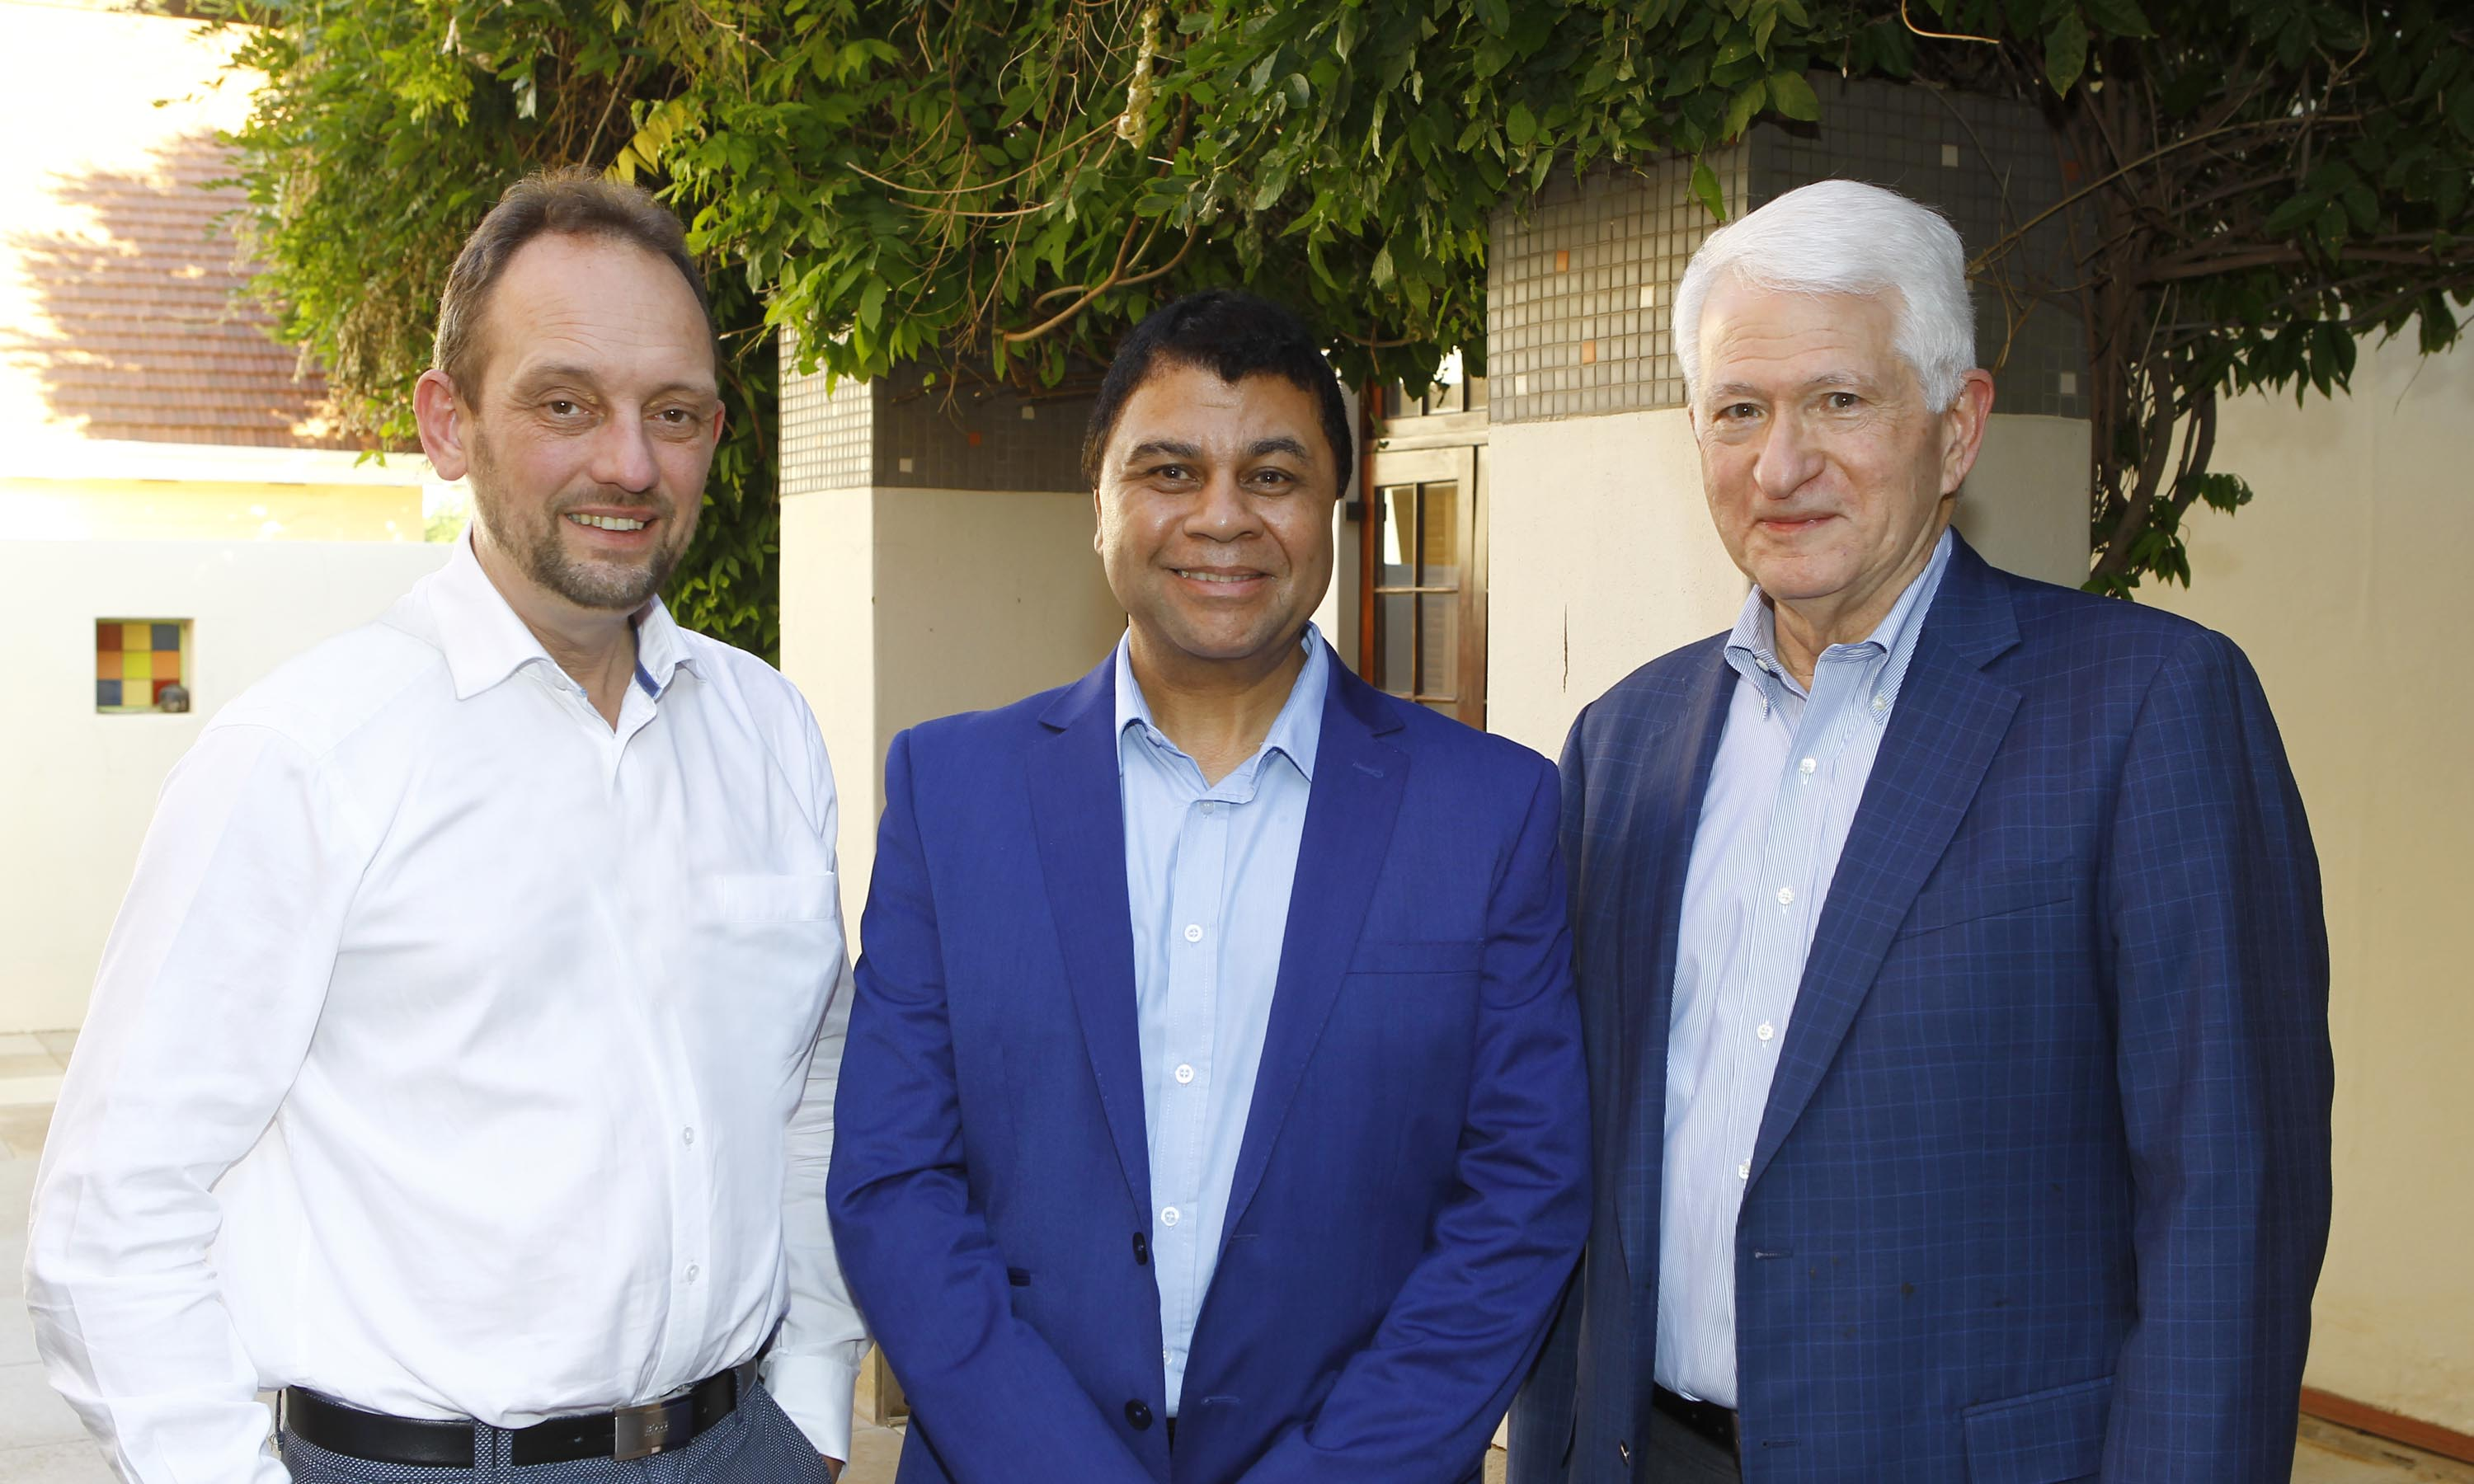 At the meet-and-greet on Monday are from left; Prof Ruad Ganzevoort, Prof Francis Pietersen and Dr Gene Block